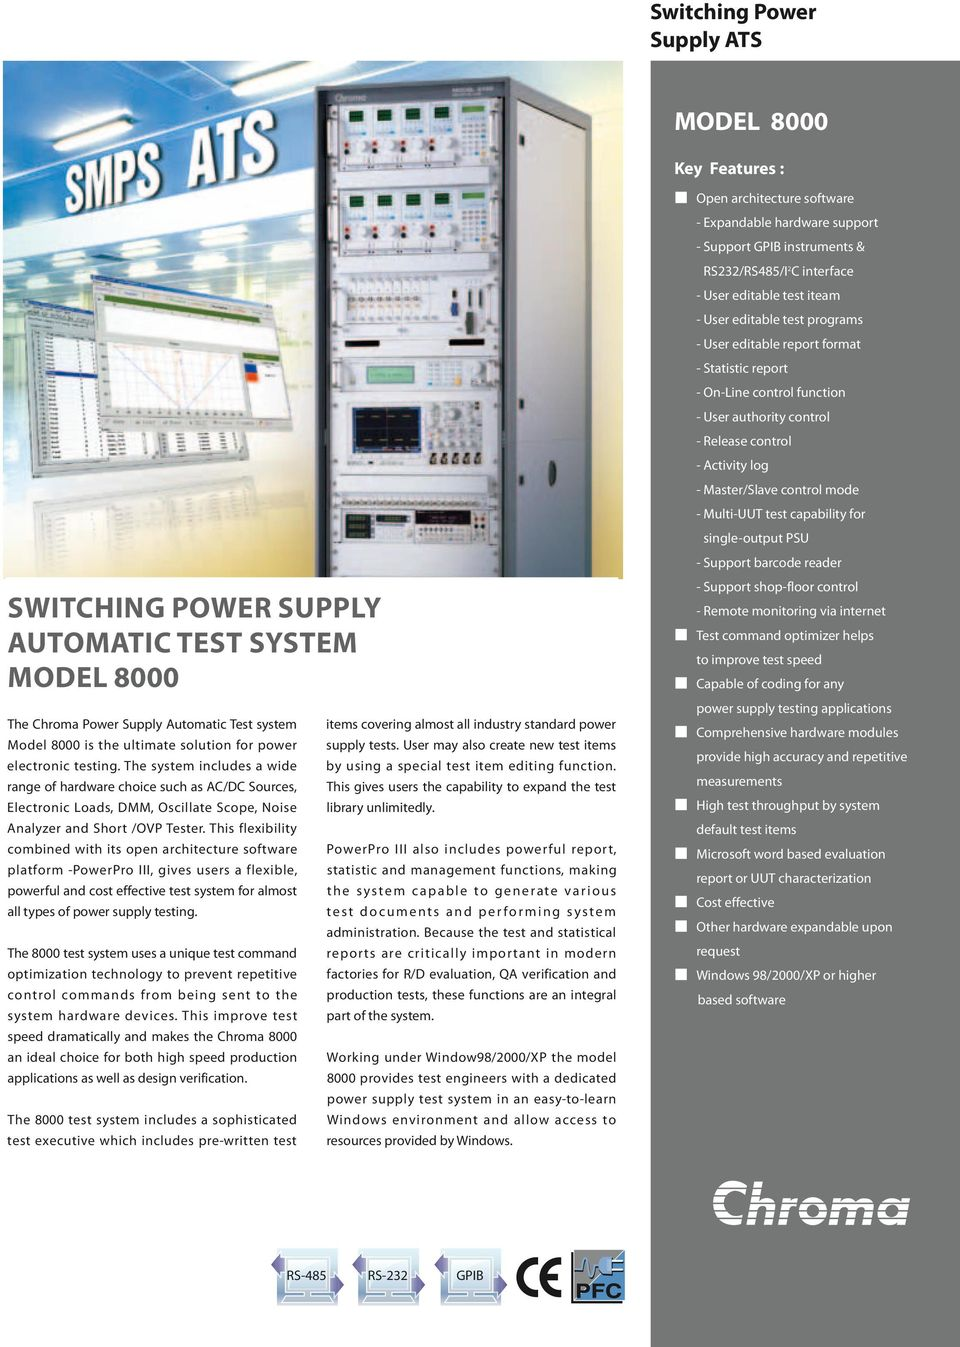 Switching Power Supply Automatic Test System Model Pdf Antec Atx12v Tester Multi Uut Capability For Single Output Psu Support Barcode Reader